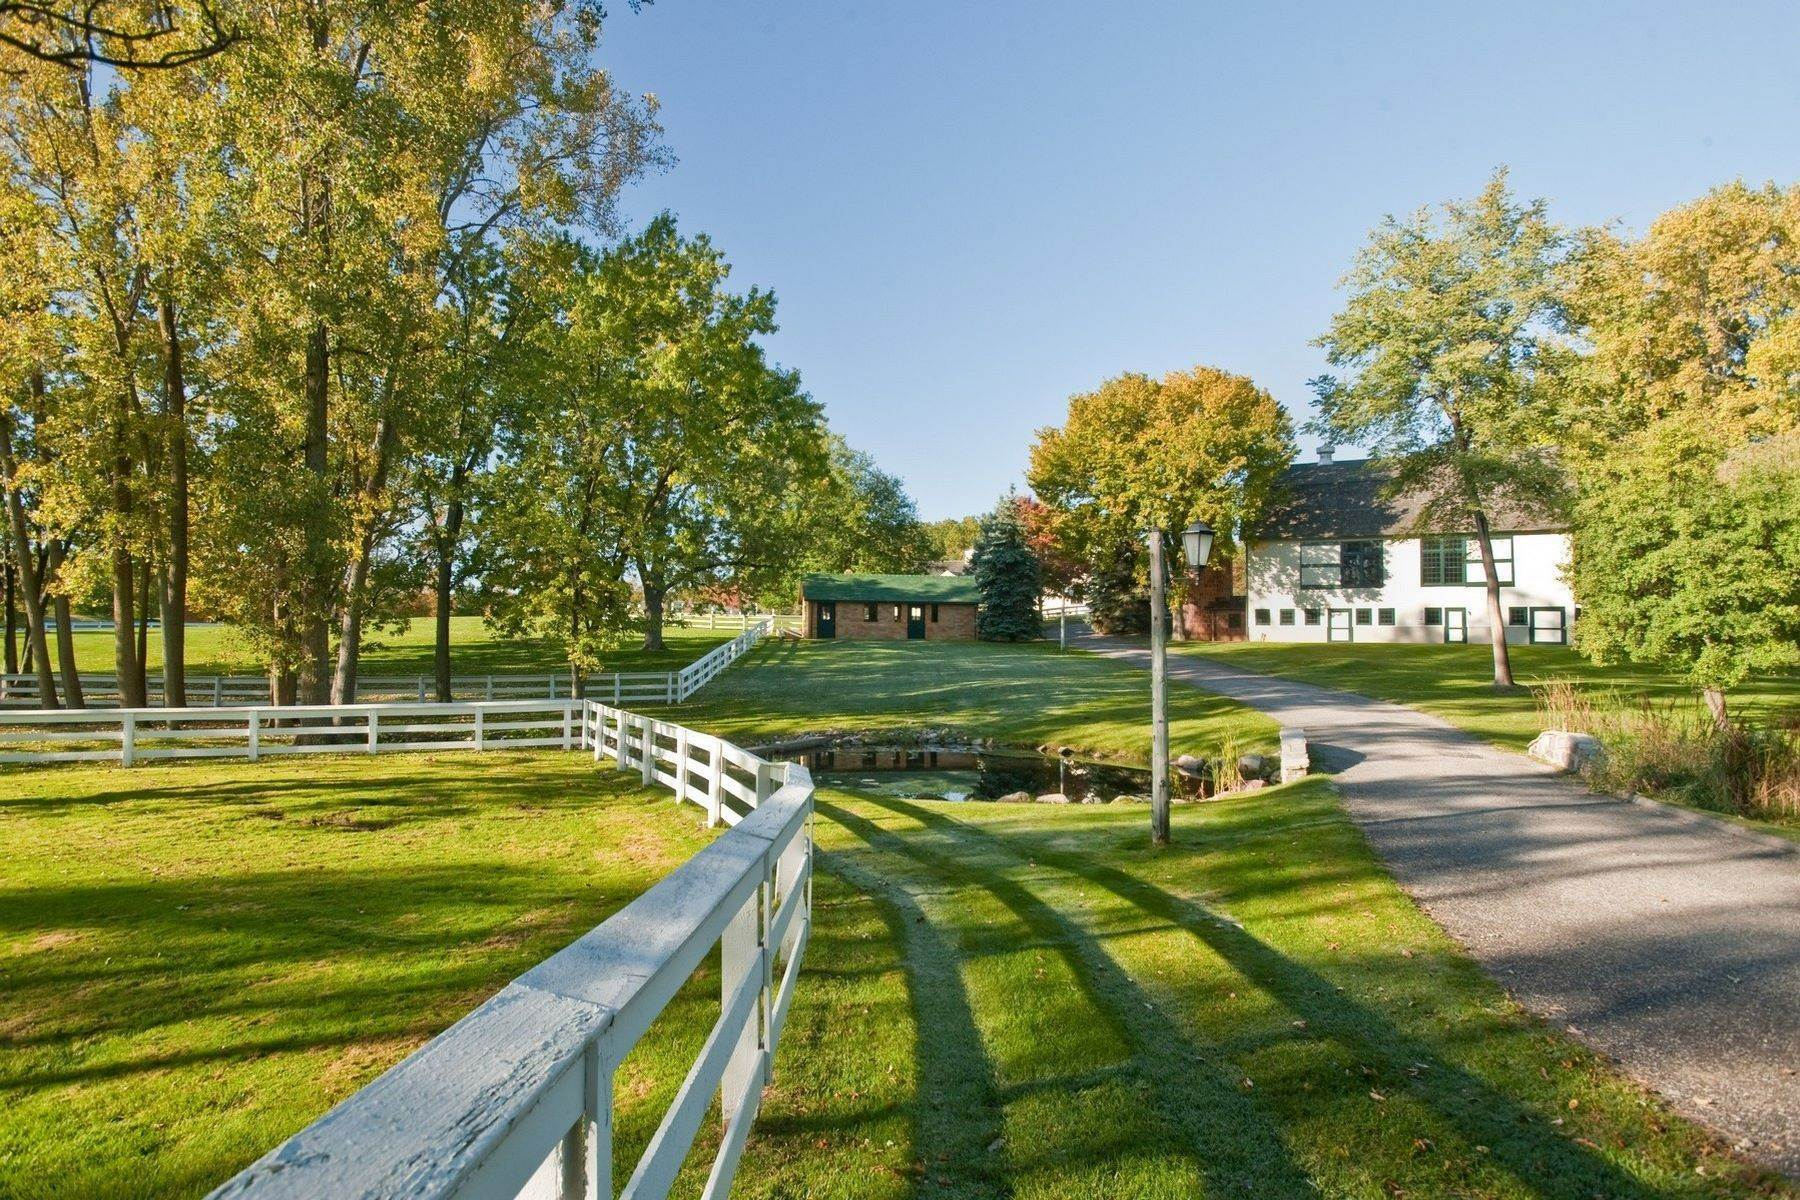 2. Property for Sale at The Stables 2670 Turtle Lake Drive, #44 and #45 Bloomfield Hills, Michigan 48302 United States